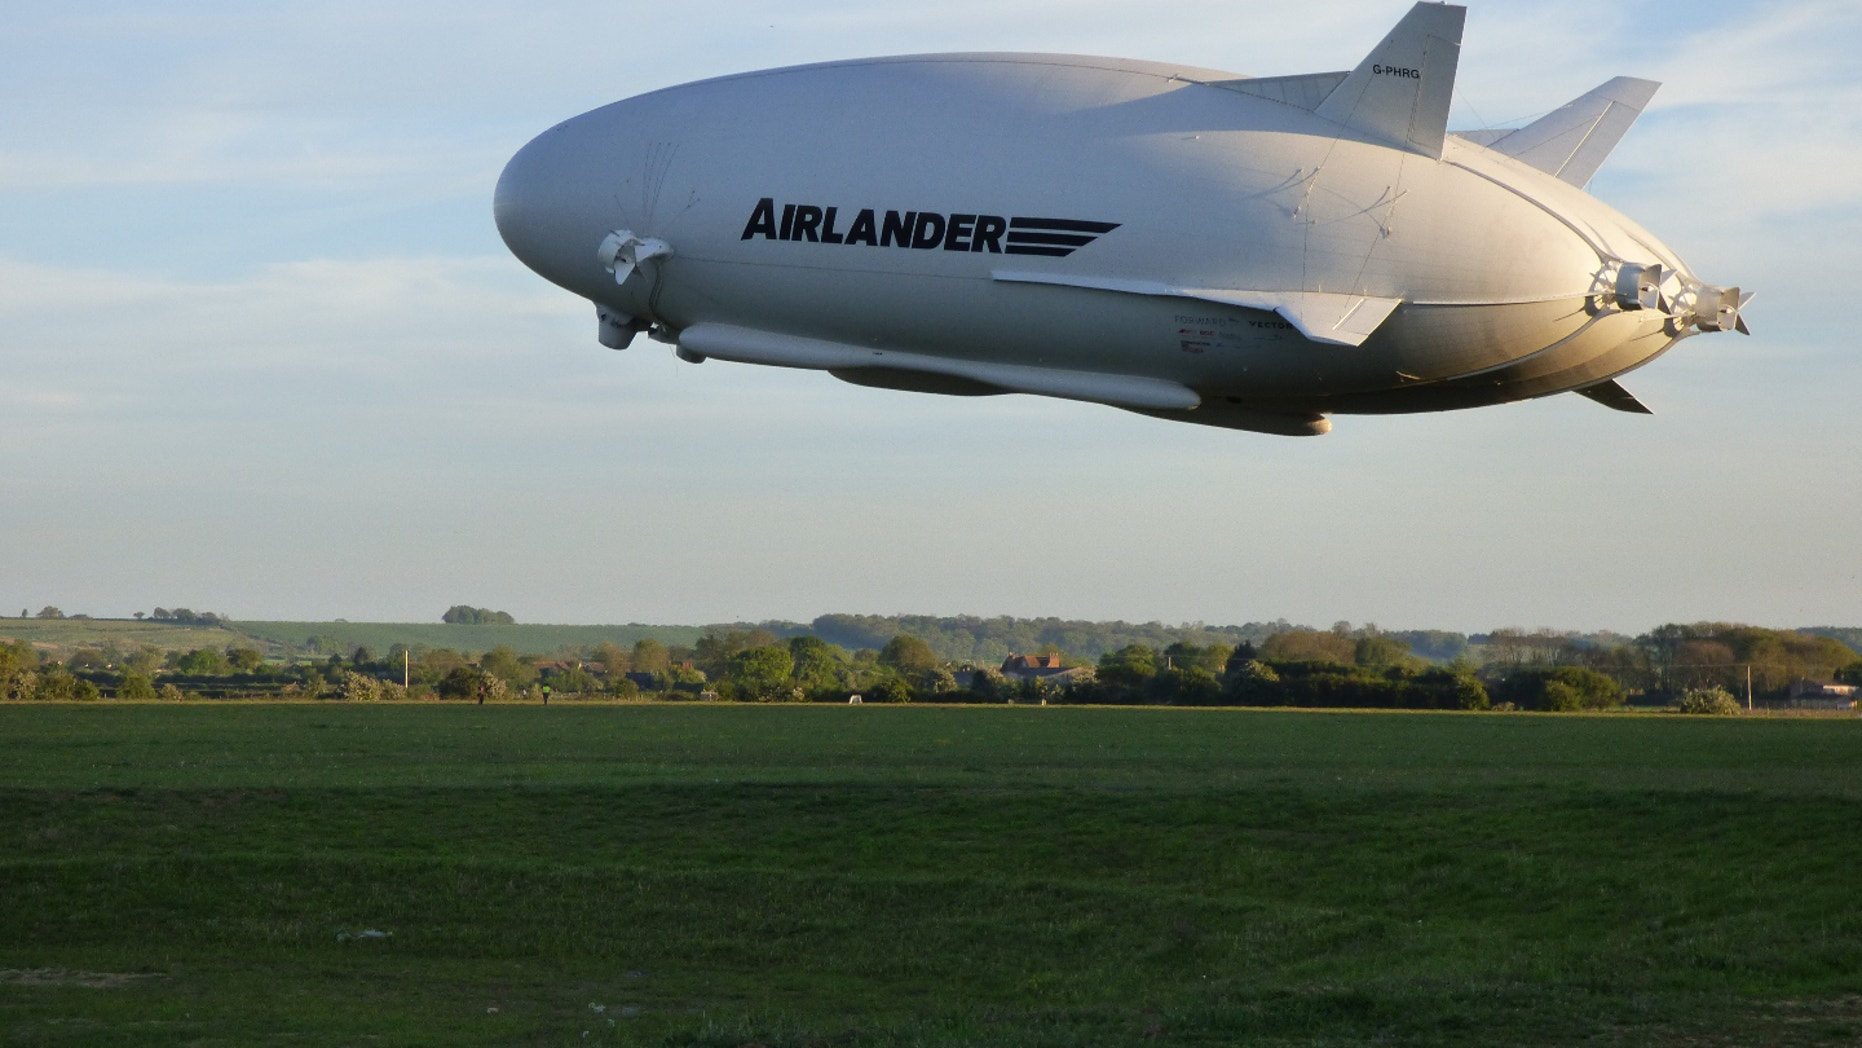 At a mammoth 302 feet (92 meters) long, the blimp-like Airlander 10 is the largest aircraft currently flying.